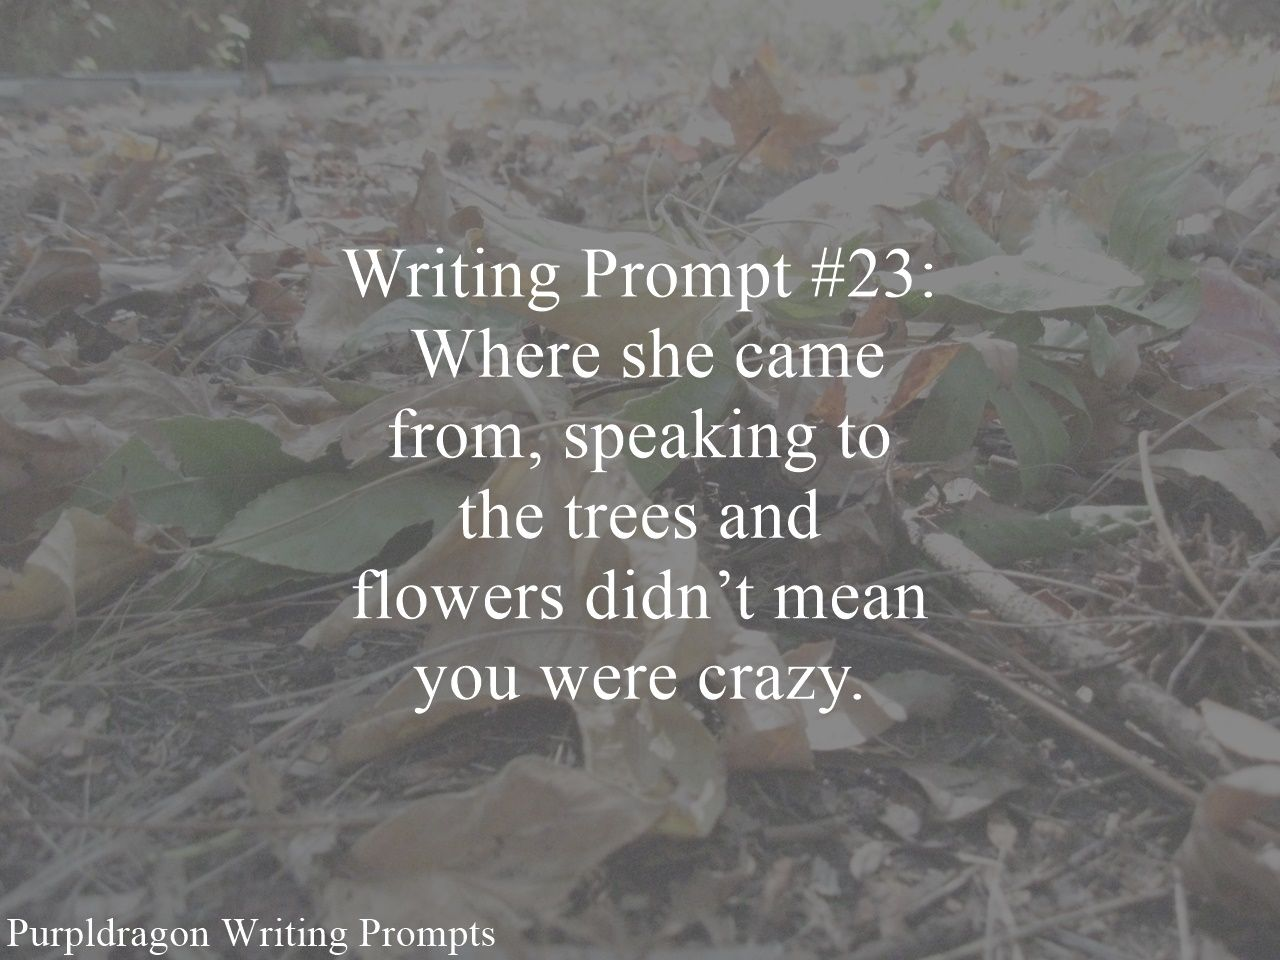 Writing Prompt #23: Where she came from, speaking to the trees and flowers didn't mean you were crazy.